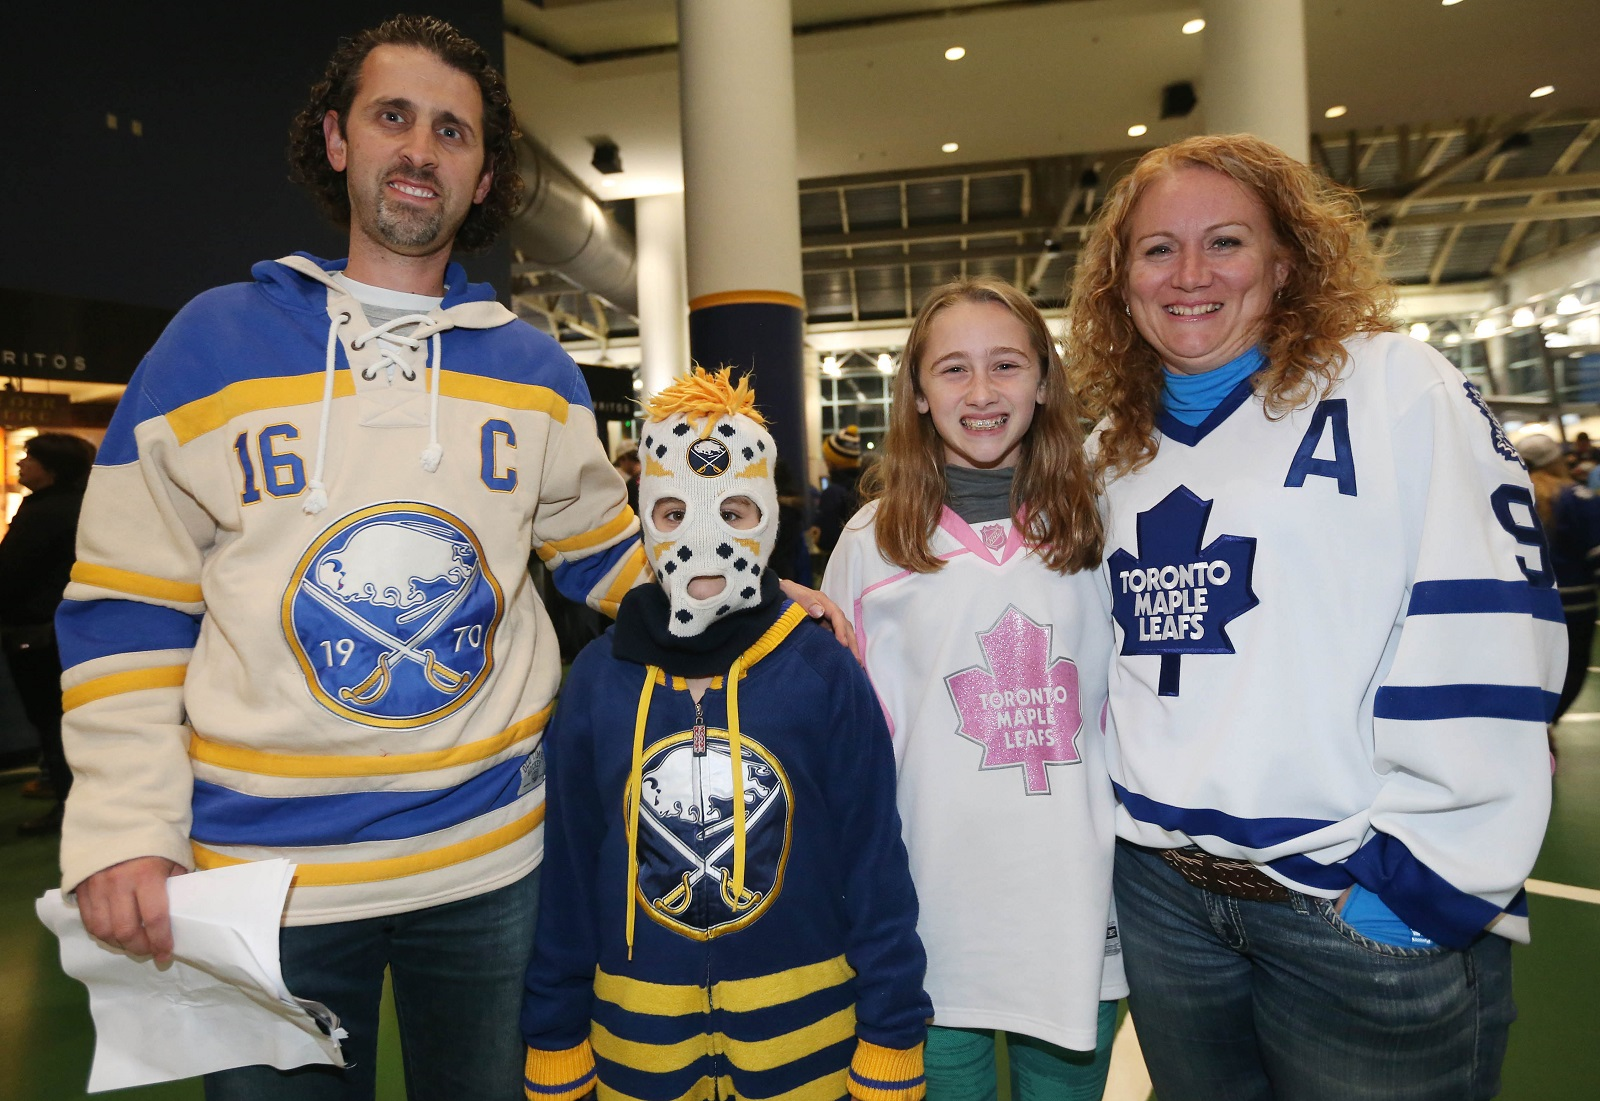 A family from St. Catharines, Ontario, with split allegiances arrives at the game. From left are Sabres fans Mark and daughter Kayleigh Digirola, and Leafs fans Gabriella and her mother Allison Digirola. (Sharon Cantillon/Buffalo News)